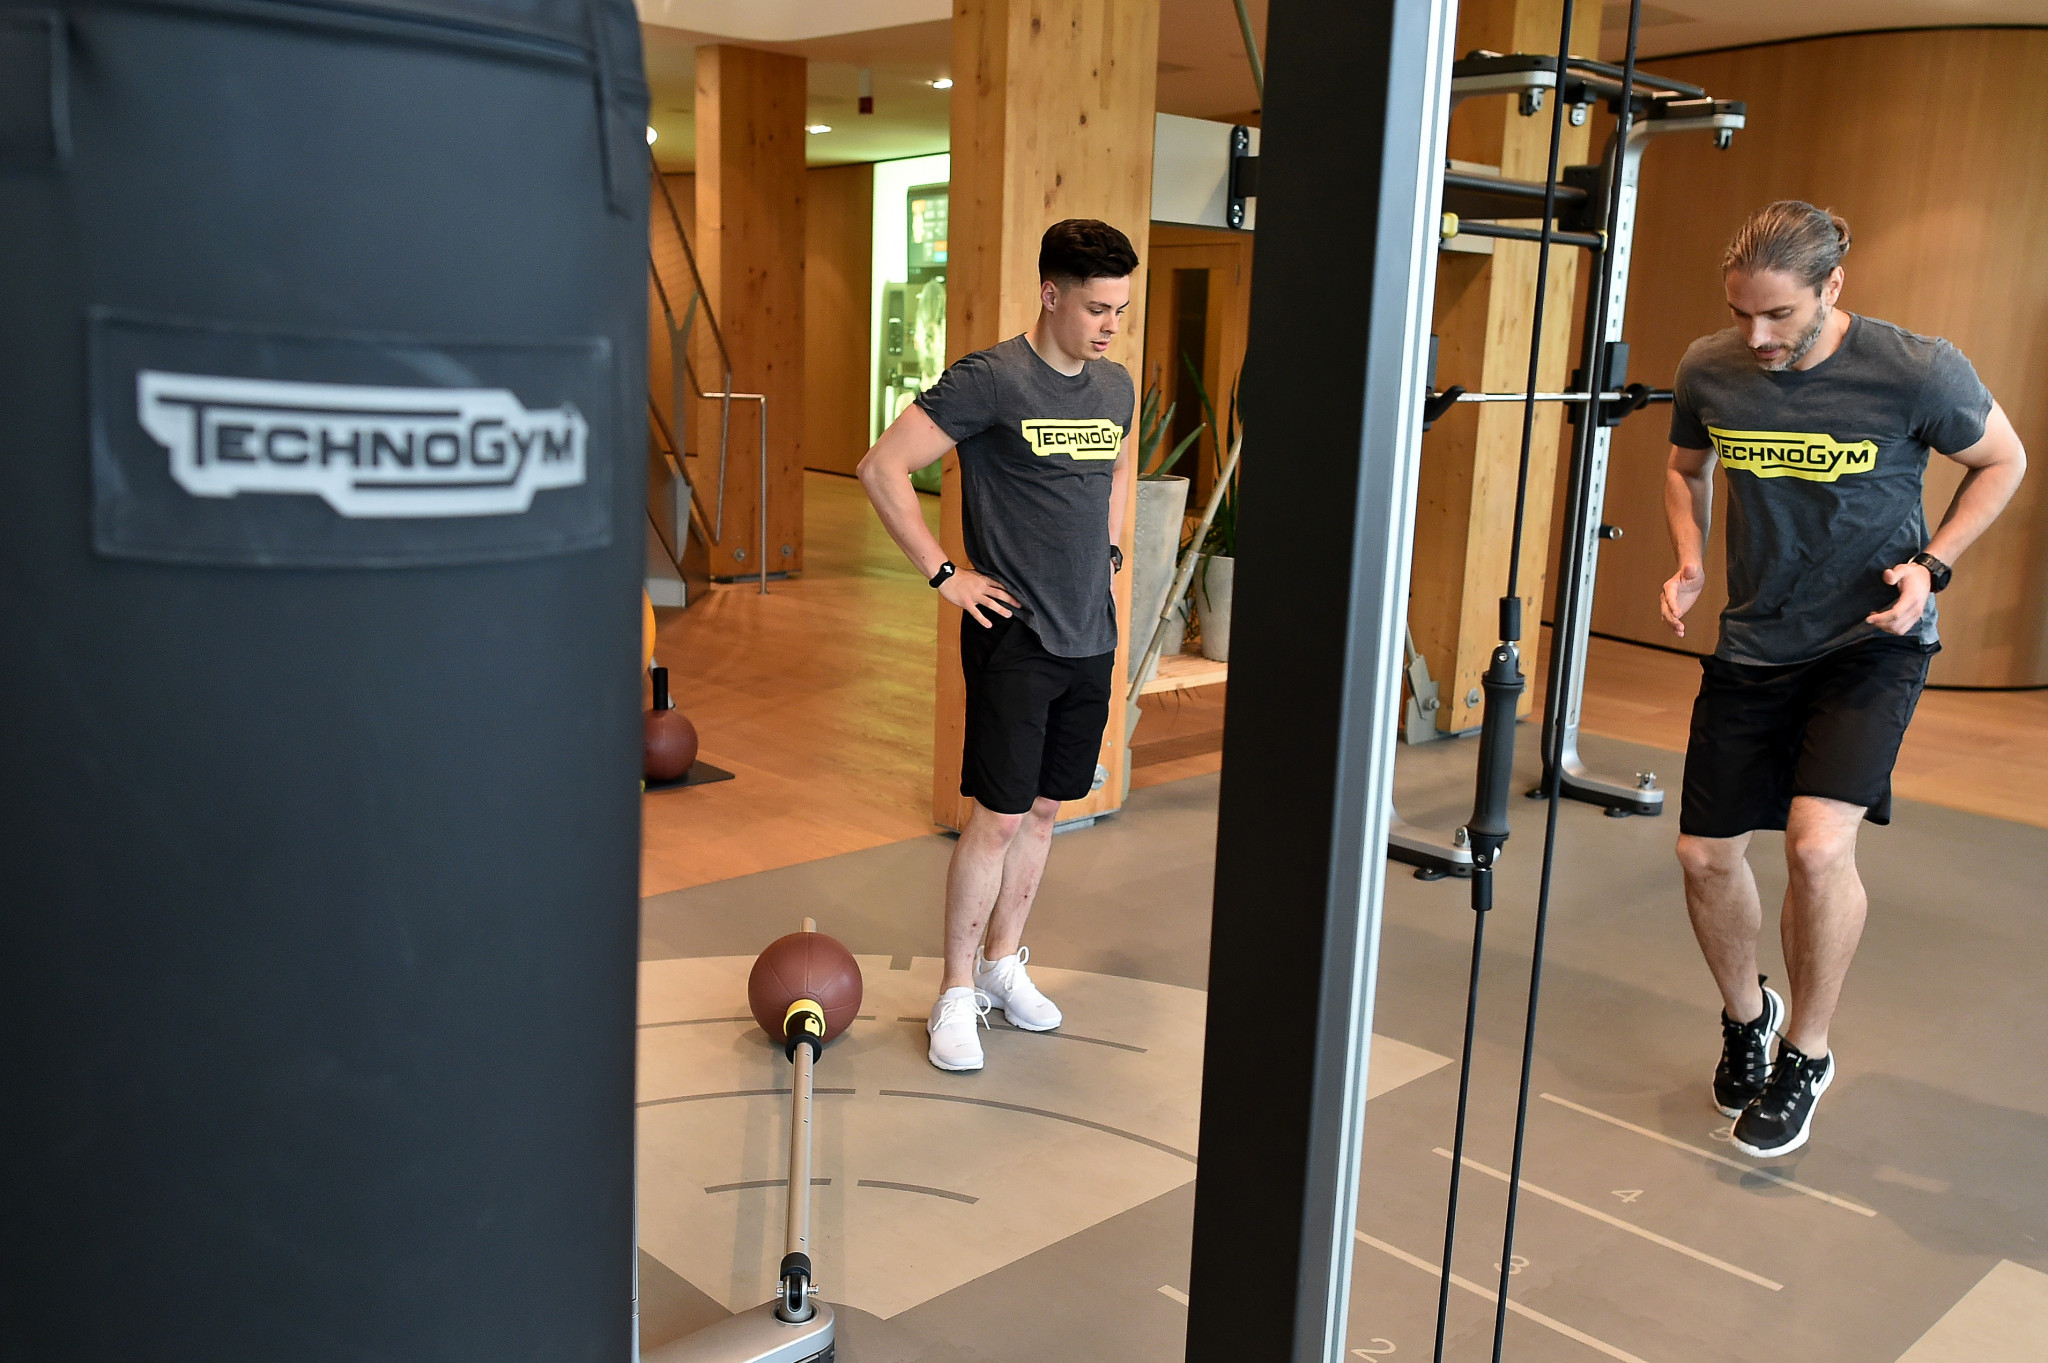 Tokyo 2020 sign sponsorship deal with Technogym